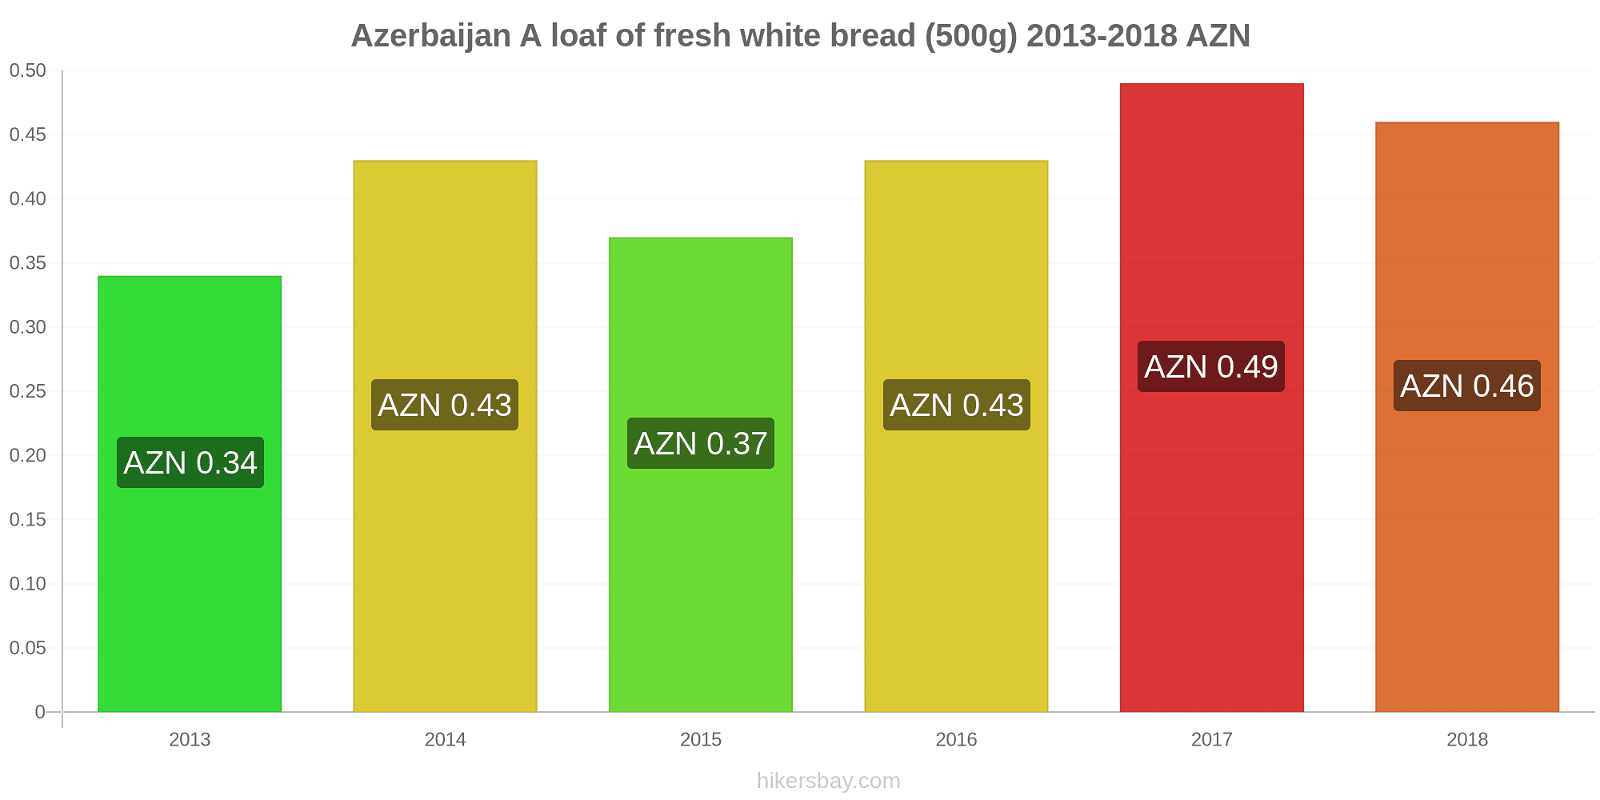 Azerbaijan price changes A loaf of fresh white bread (500g) hikersbay.com